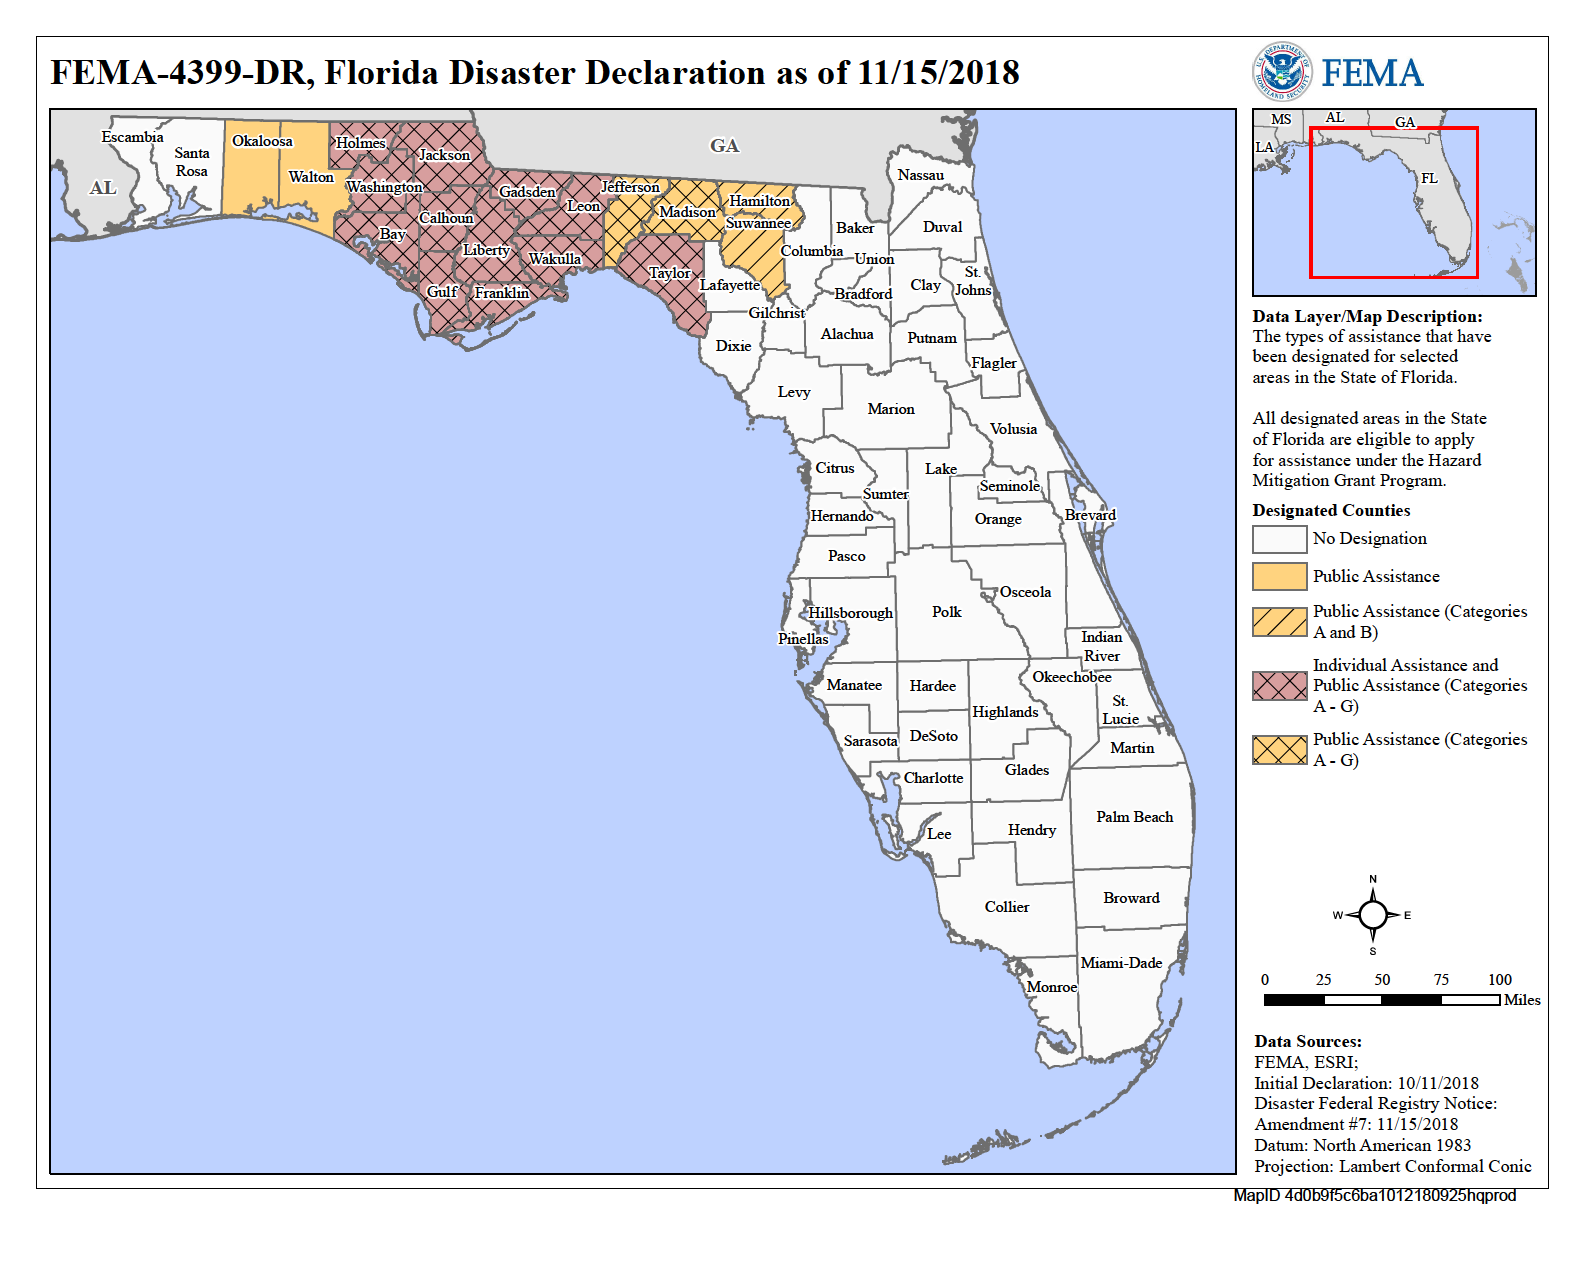 Incident Period: October 7 - October 19, 2018 - Florida Counties declared disasters due to Hurricane MichaelBay, Calhoun, Franklin, Gadsden, Gulf, Holmes, Jackson, Liberty, Taylor, Wakulla, and Washington(Disaster Relief will be helping in all counties)